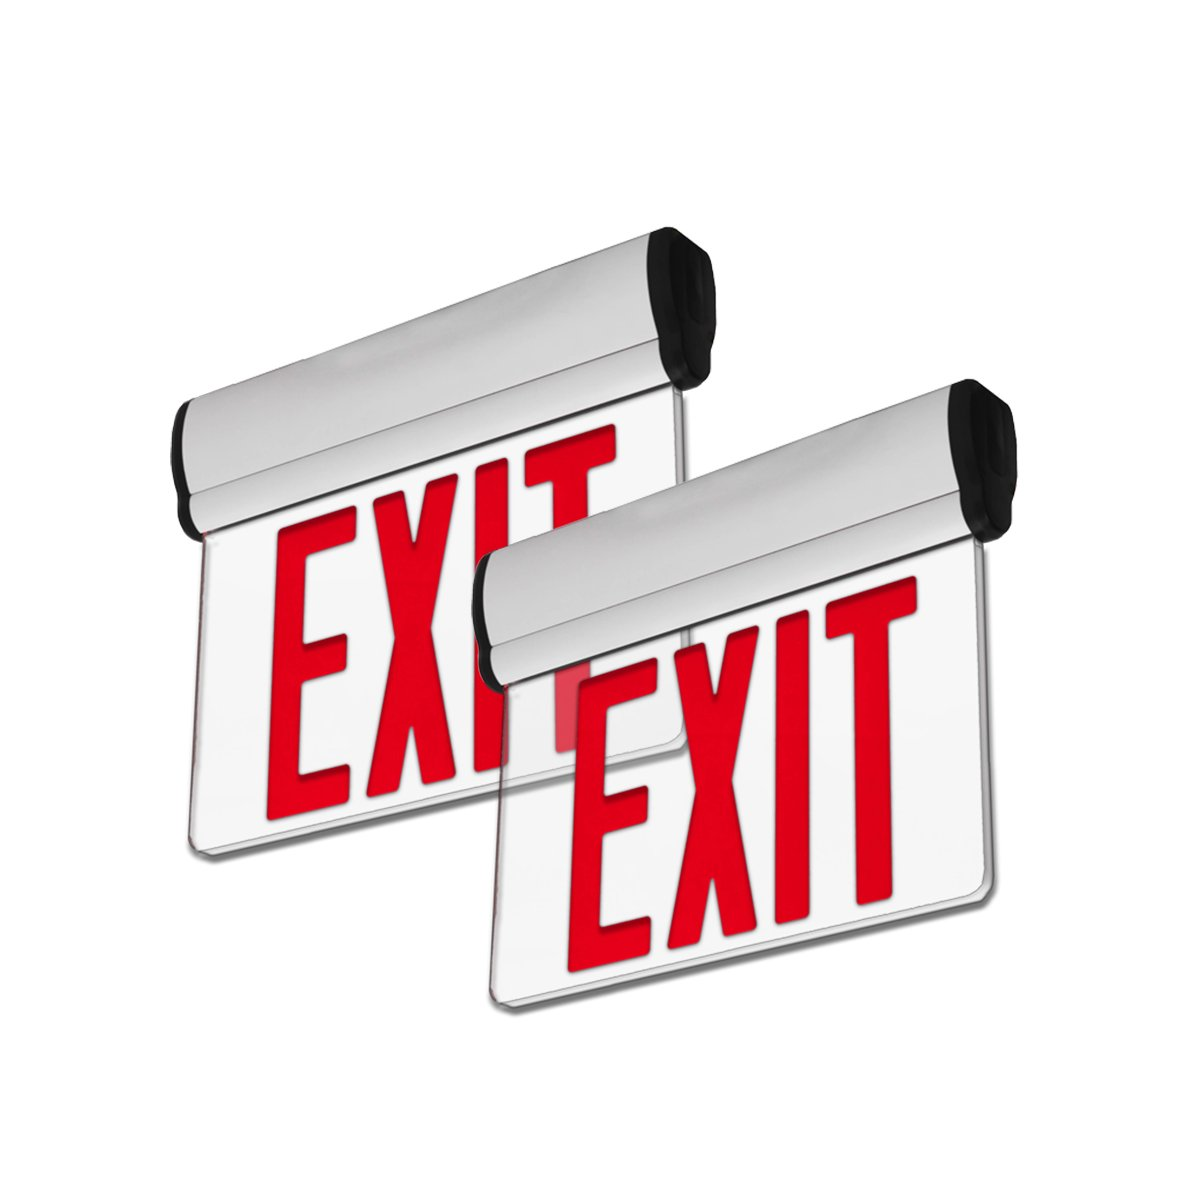 LFI Lights - 2 Pack - UL Certified - Hardwired Red LED Edge Light Exit Sign - Rotating Panel Battery Backup - ELRTRx2